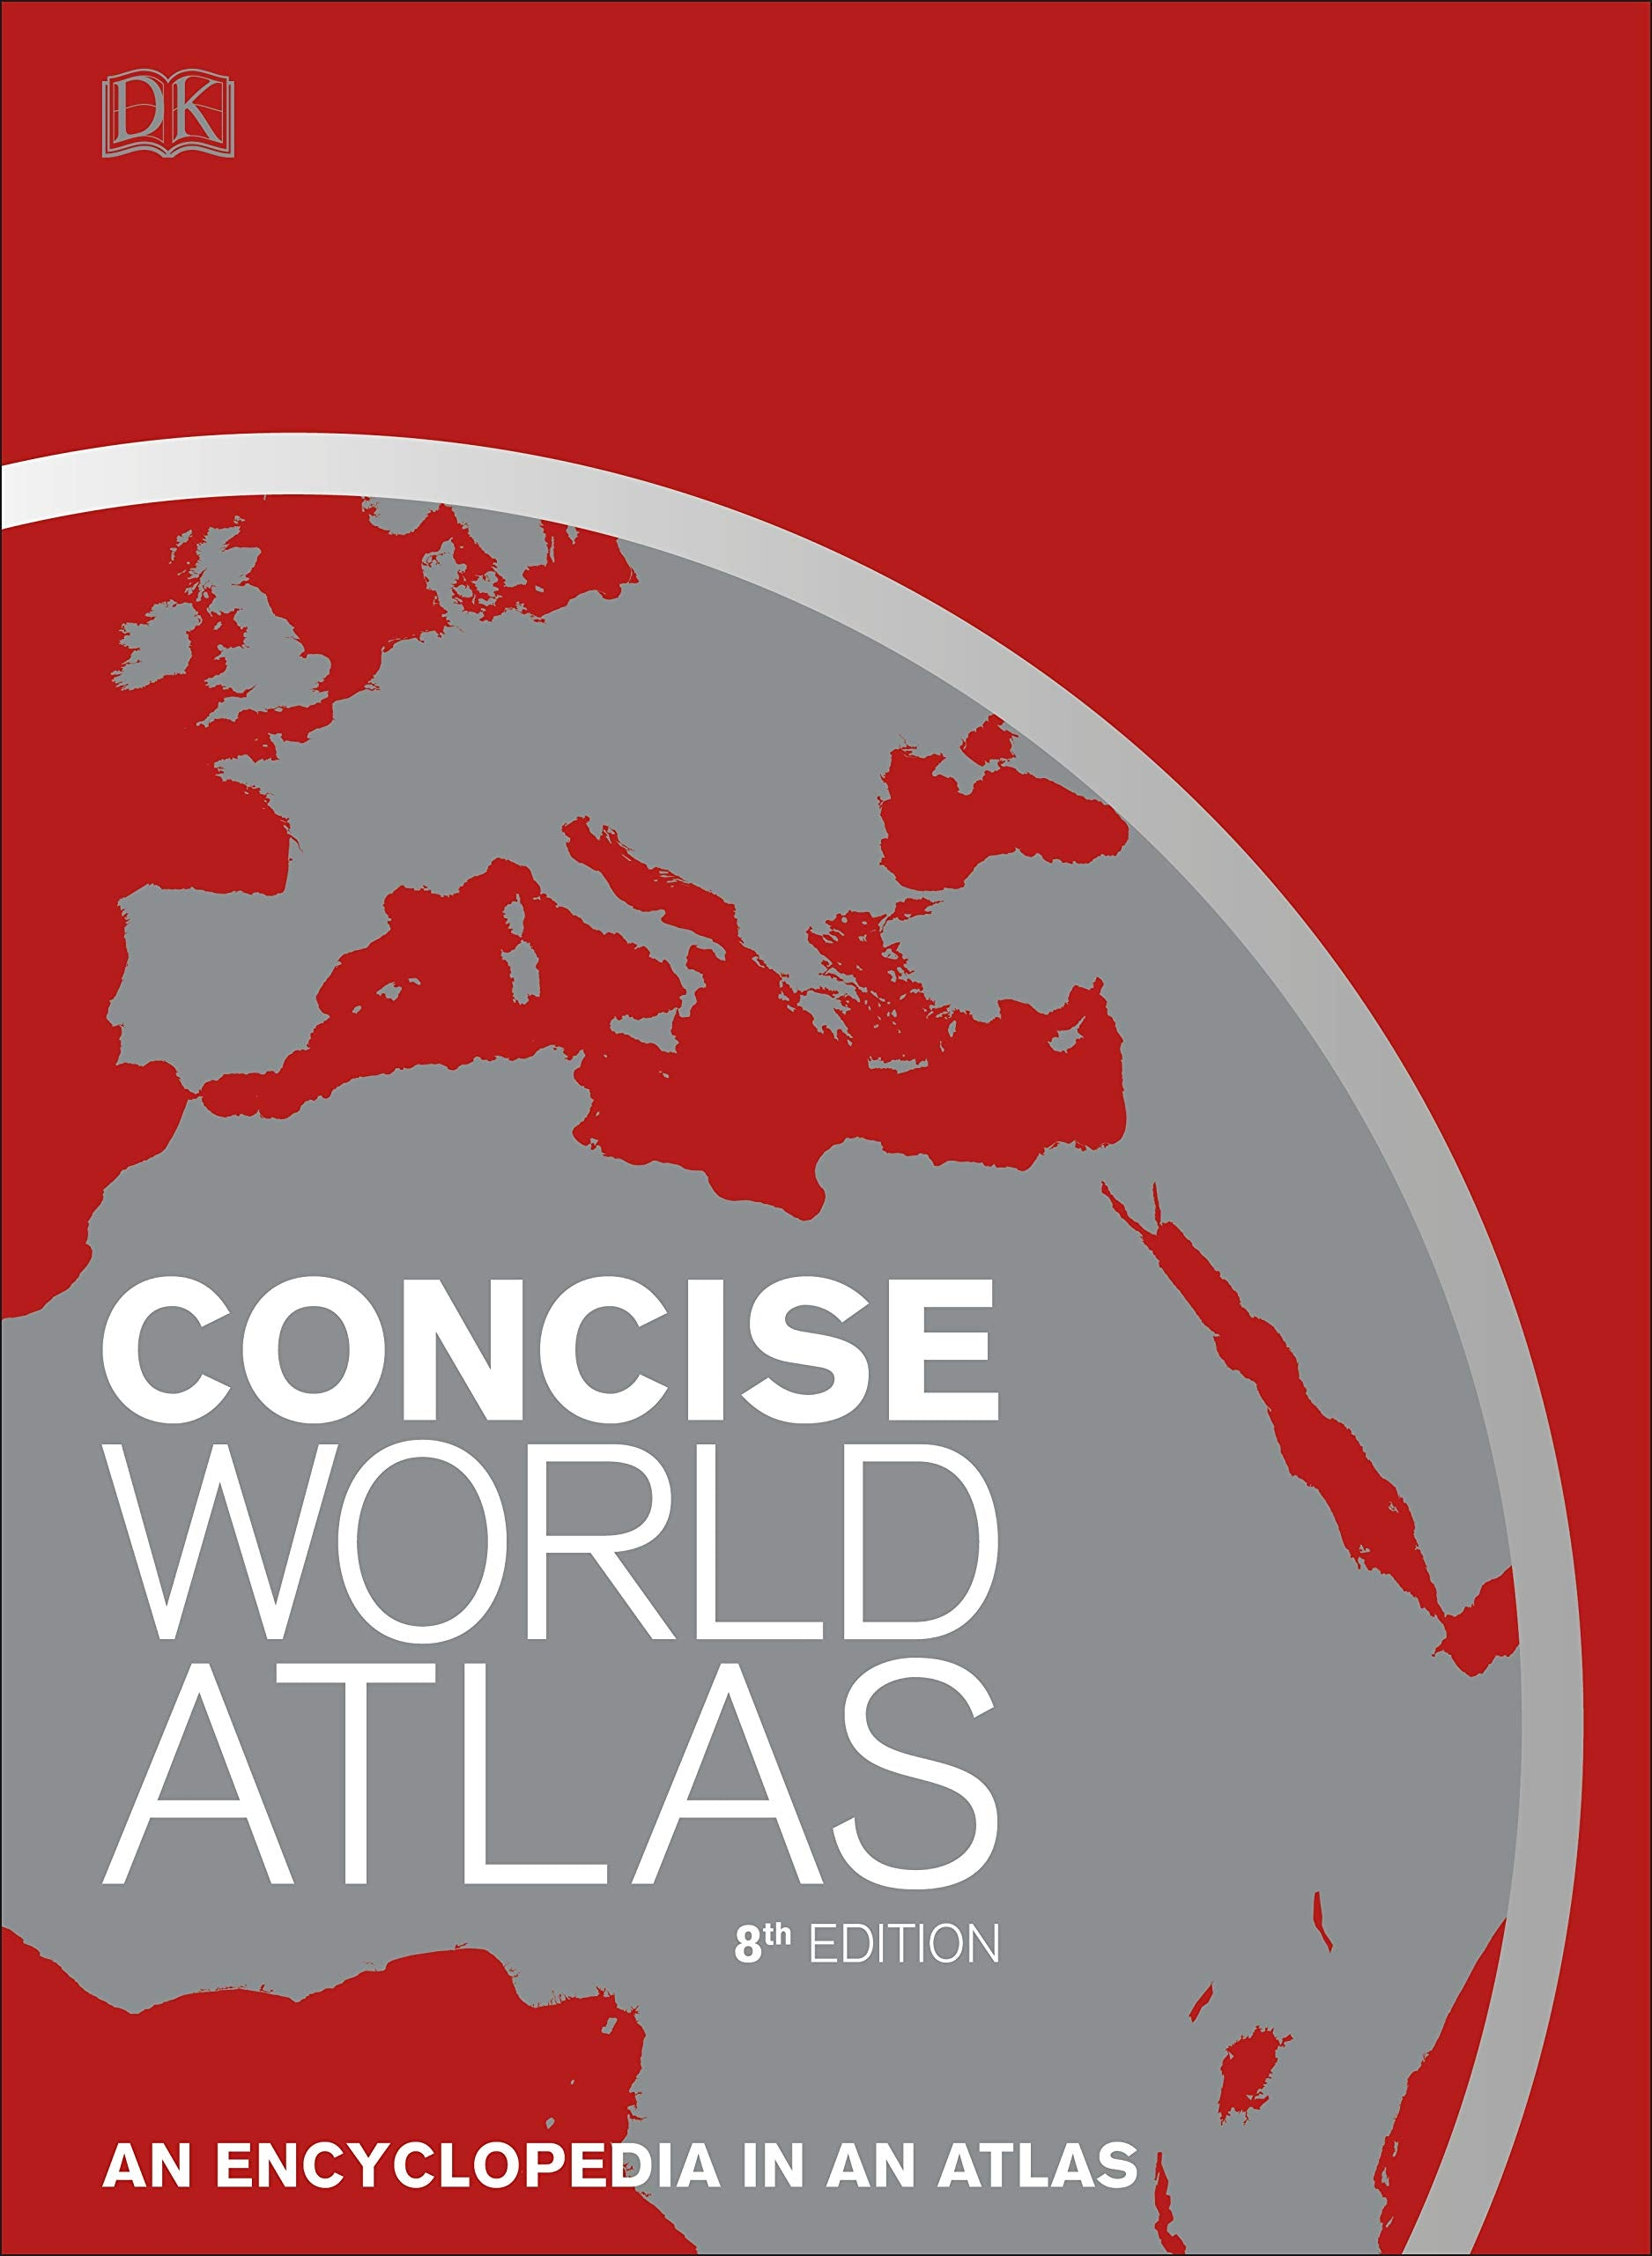 DK Concise Atlas of the World 7e